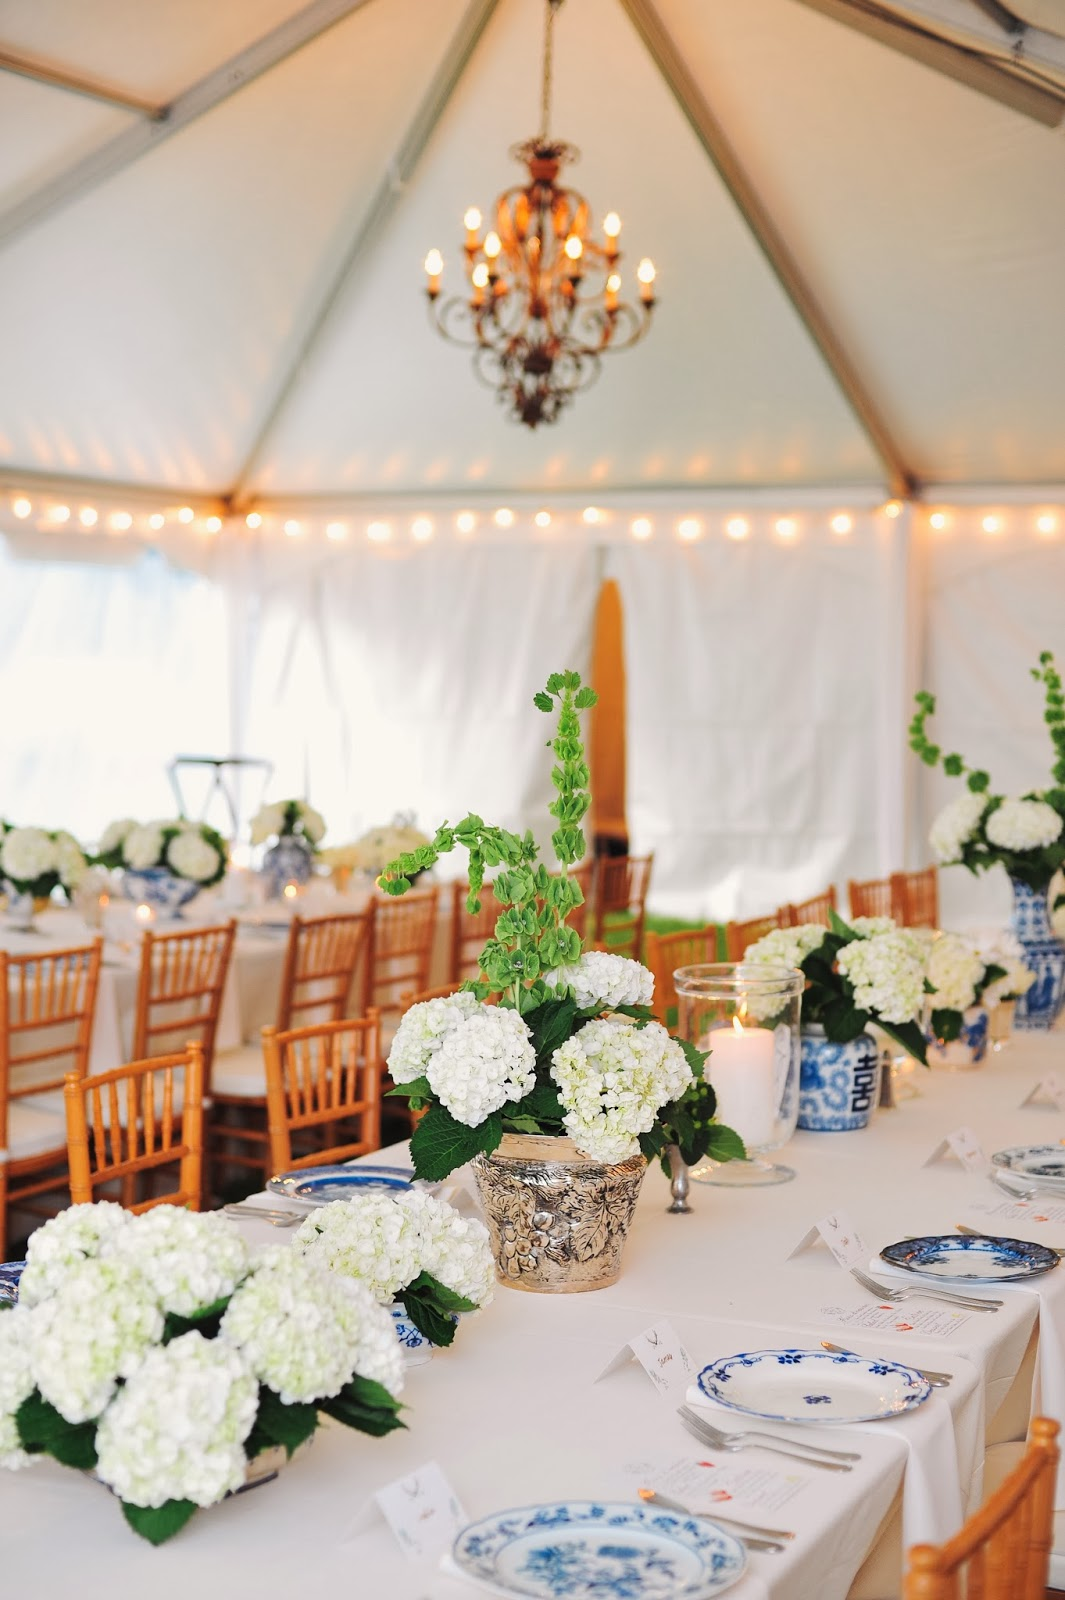 Bellissimo and bella: a blue and white rehearsal dinner for my ...